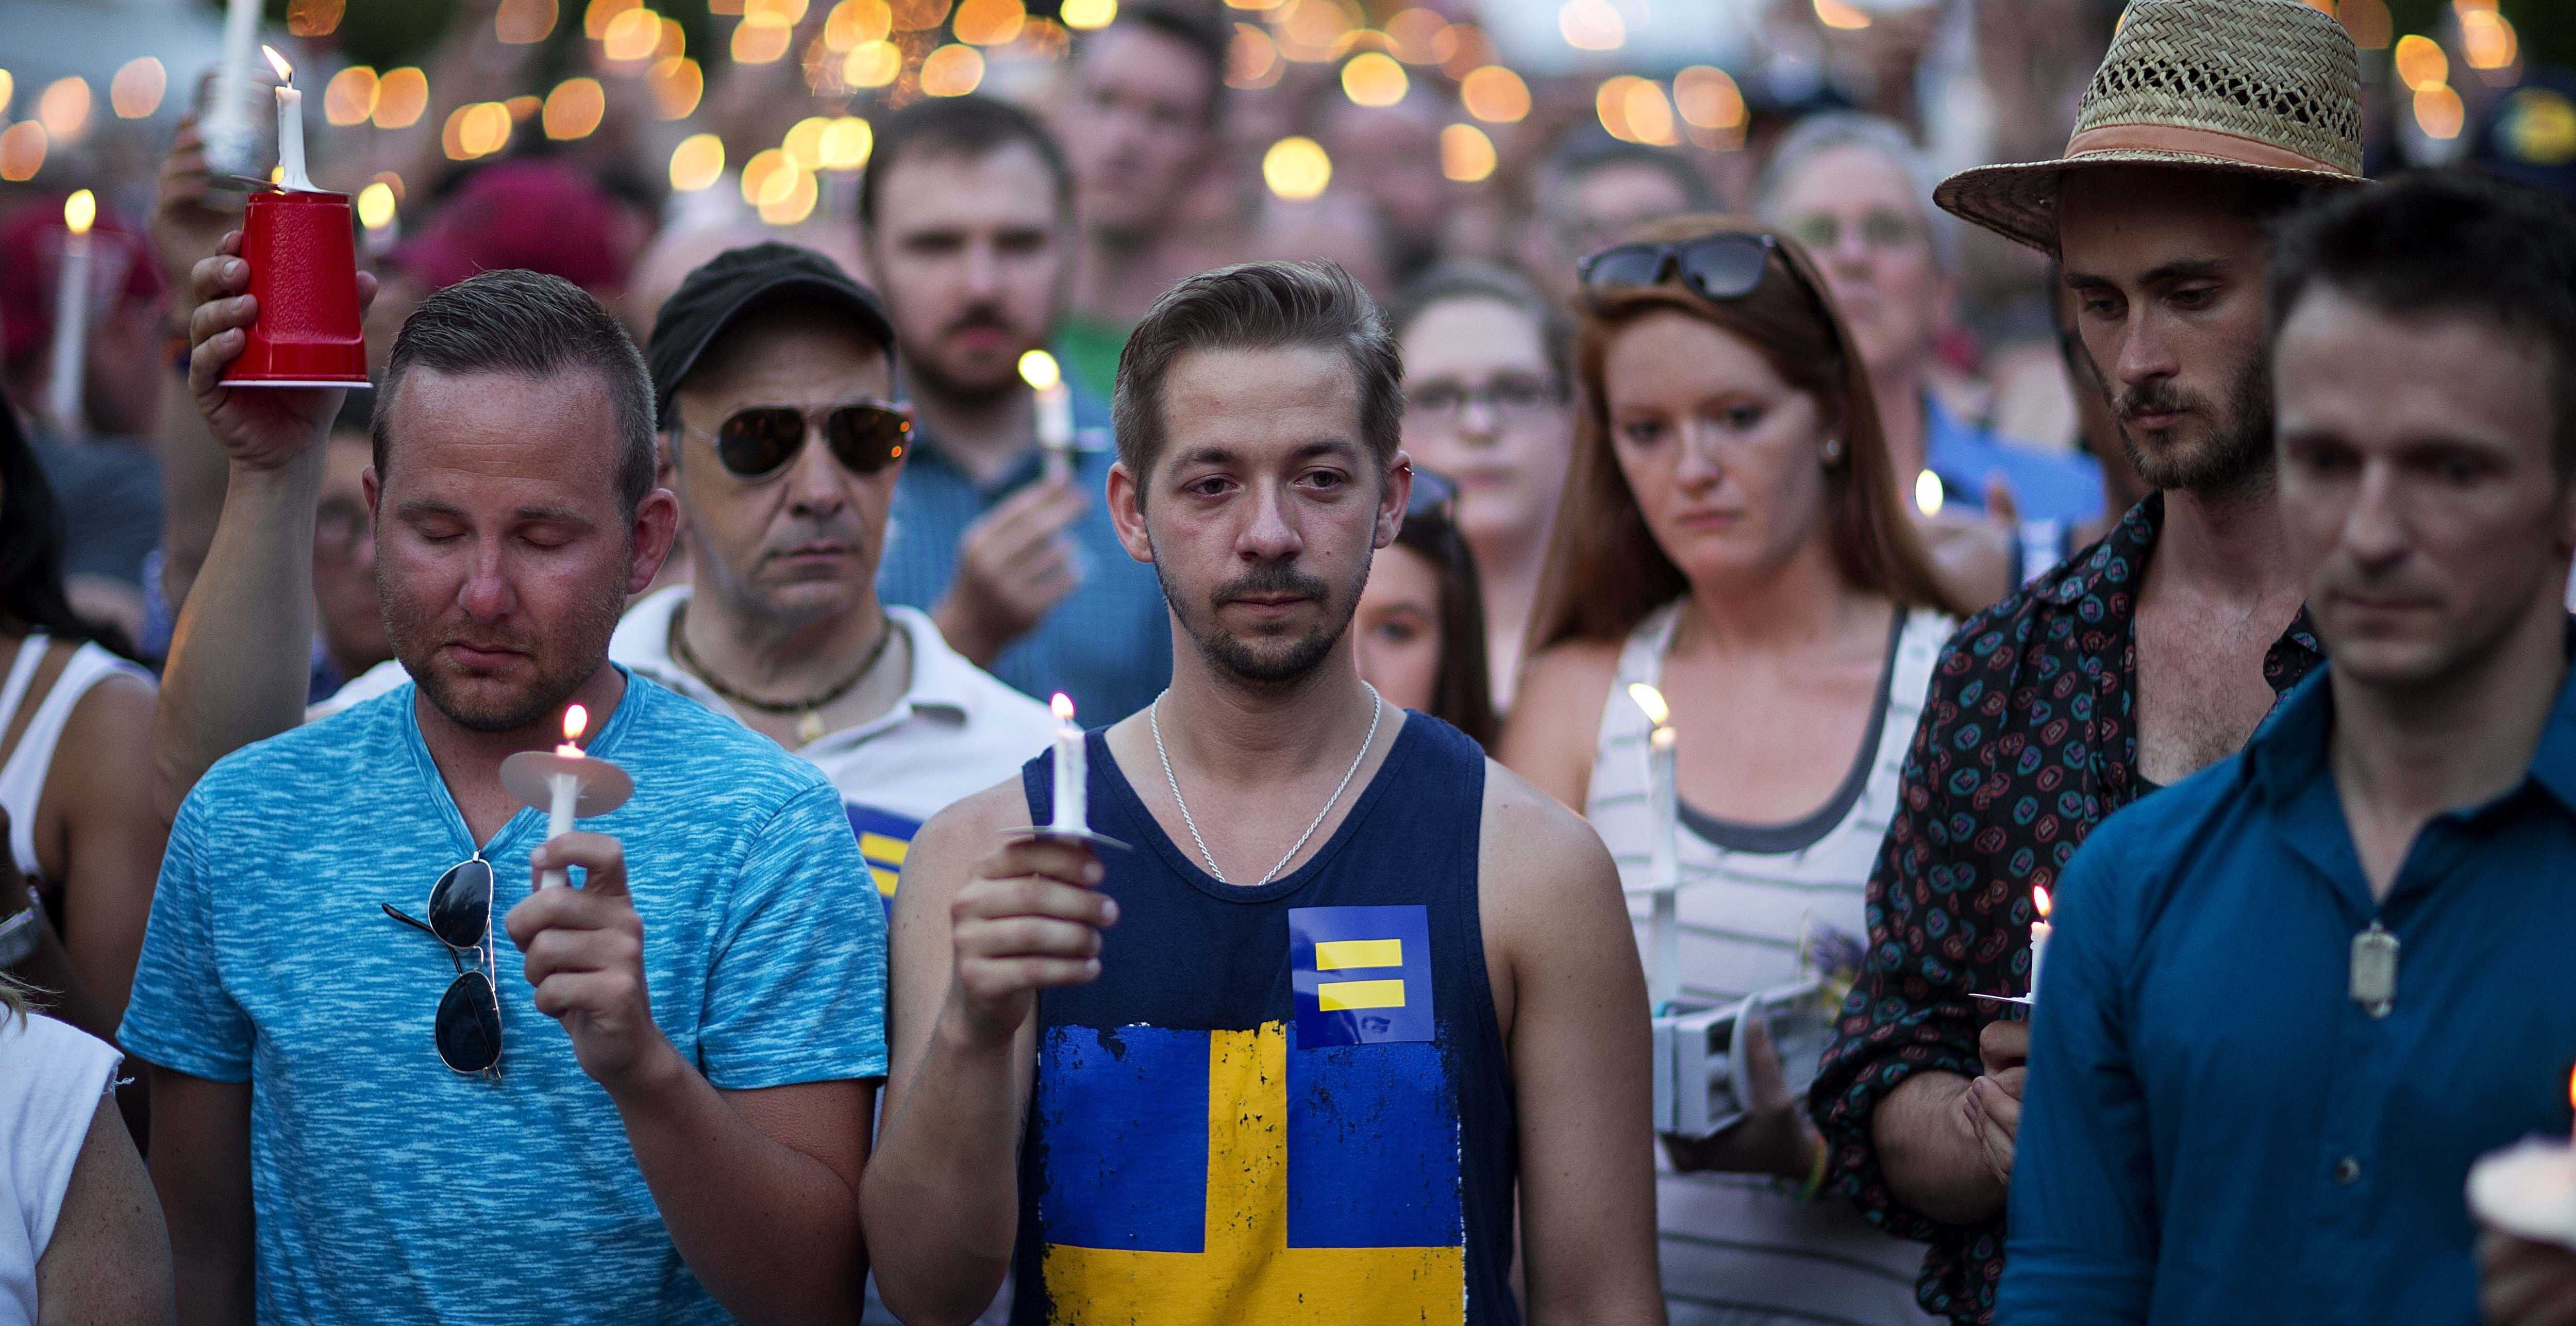 Mourners observe a moment of silence during a vigil for victims of a fatal shooting at an Orlando nightclub, Sunday, June 12, 2016, in Atlanta. (AP Photo/David Goldman)